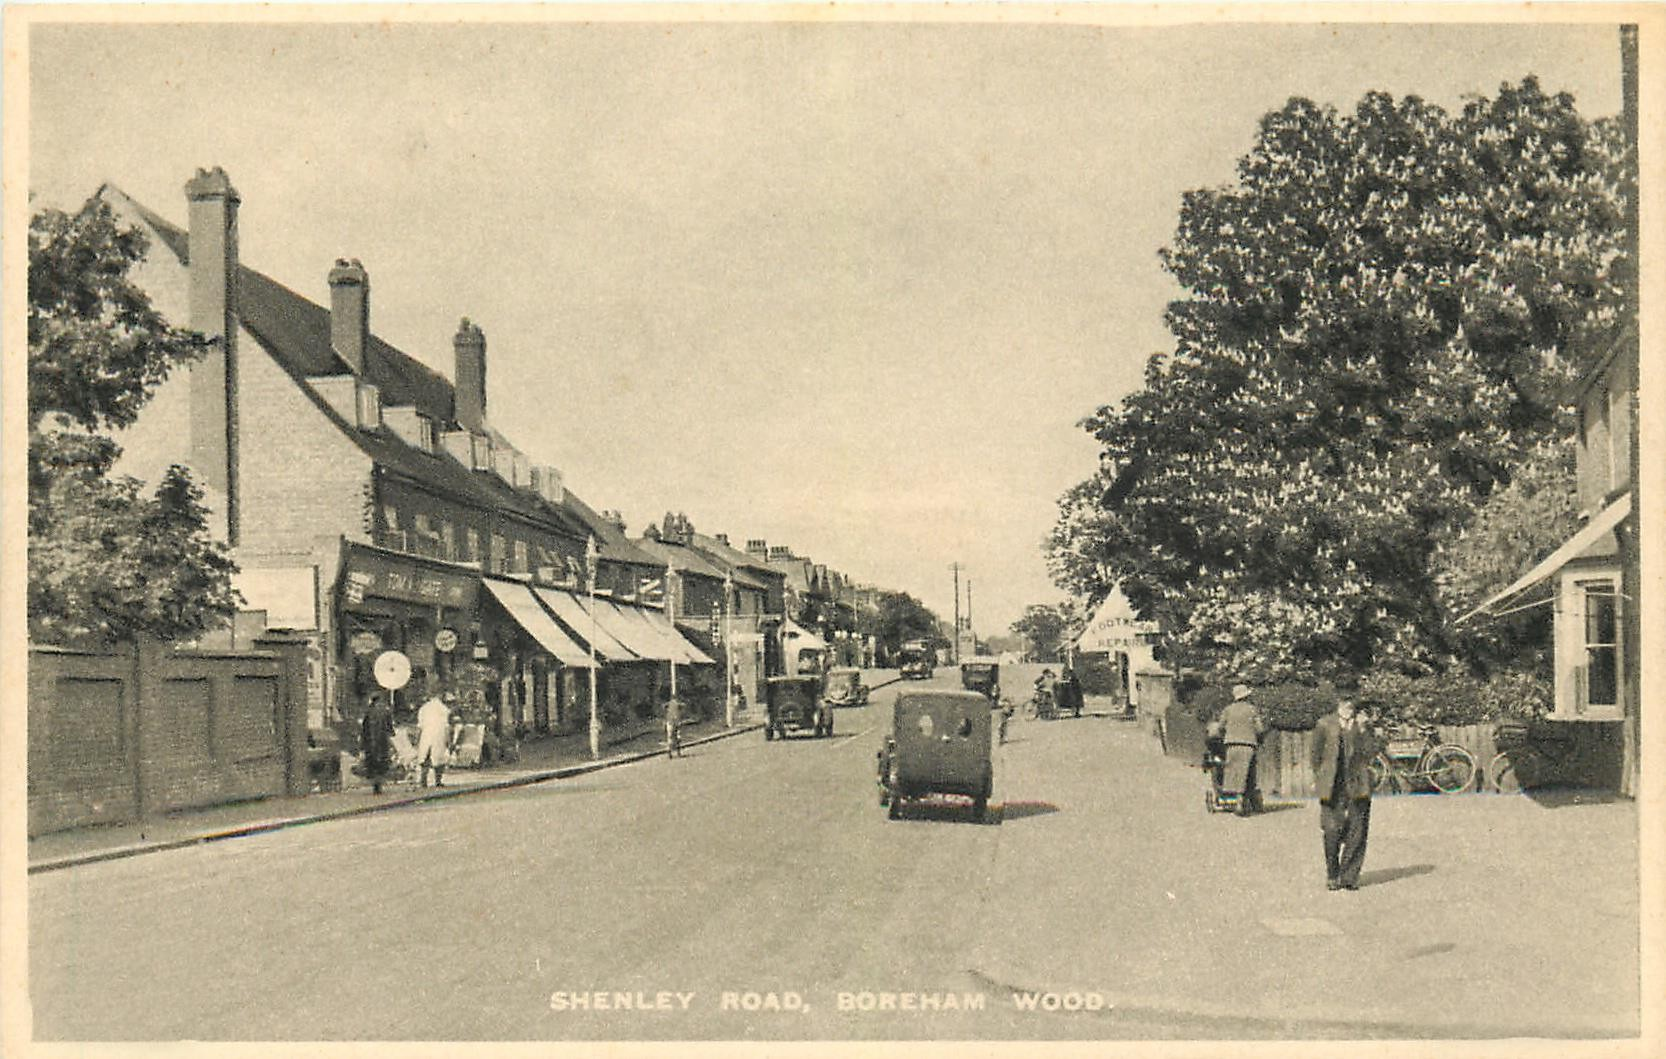 Junction of Shenley Road and Drayton Road